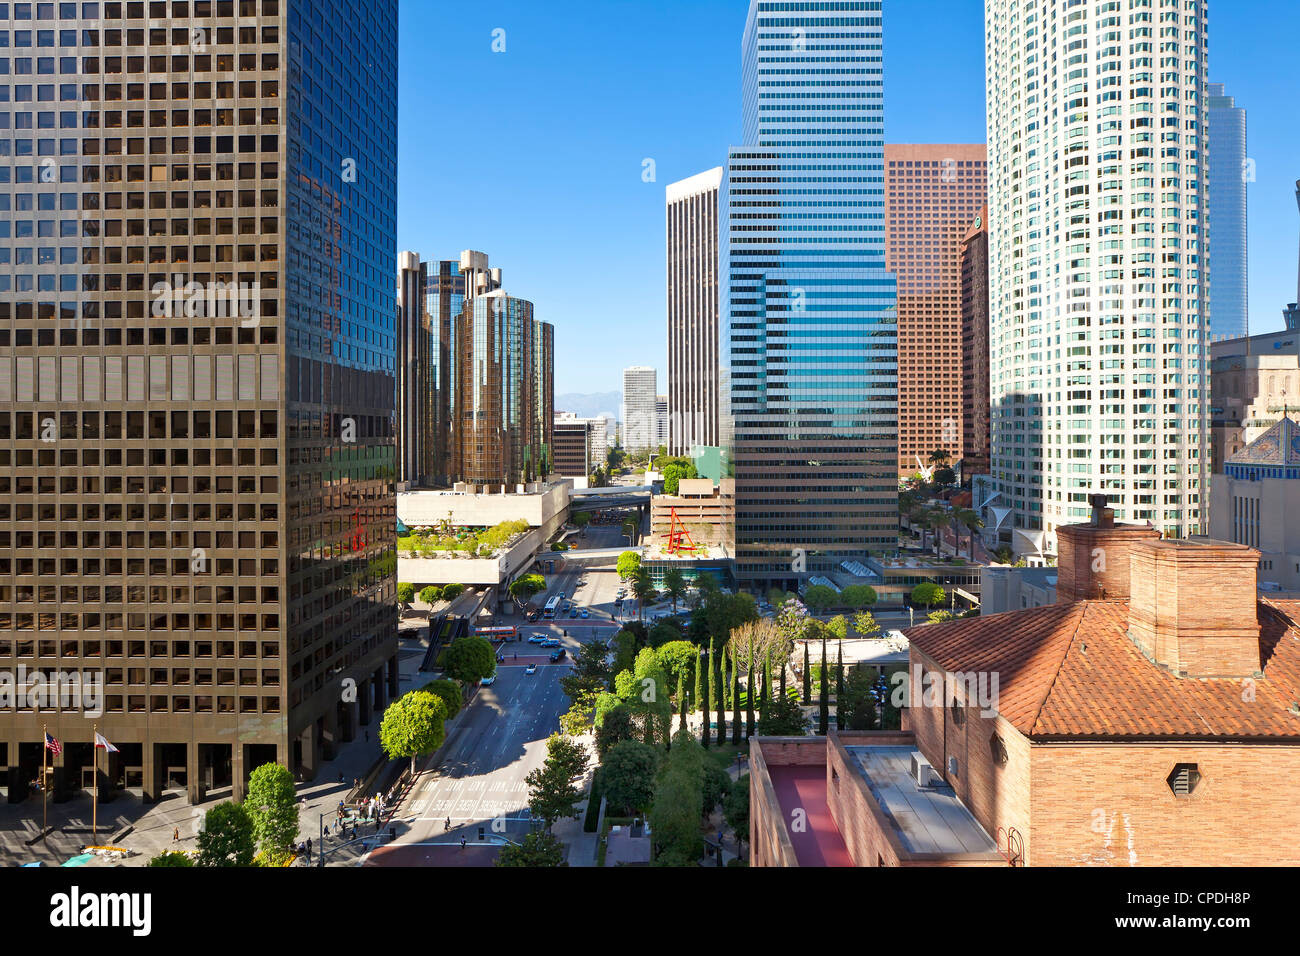 Downtown, Los Angeles, California, United States of America, North America - Stock Image